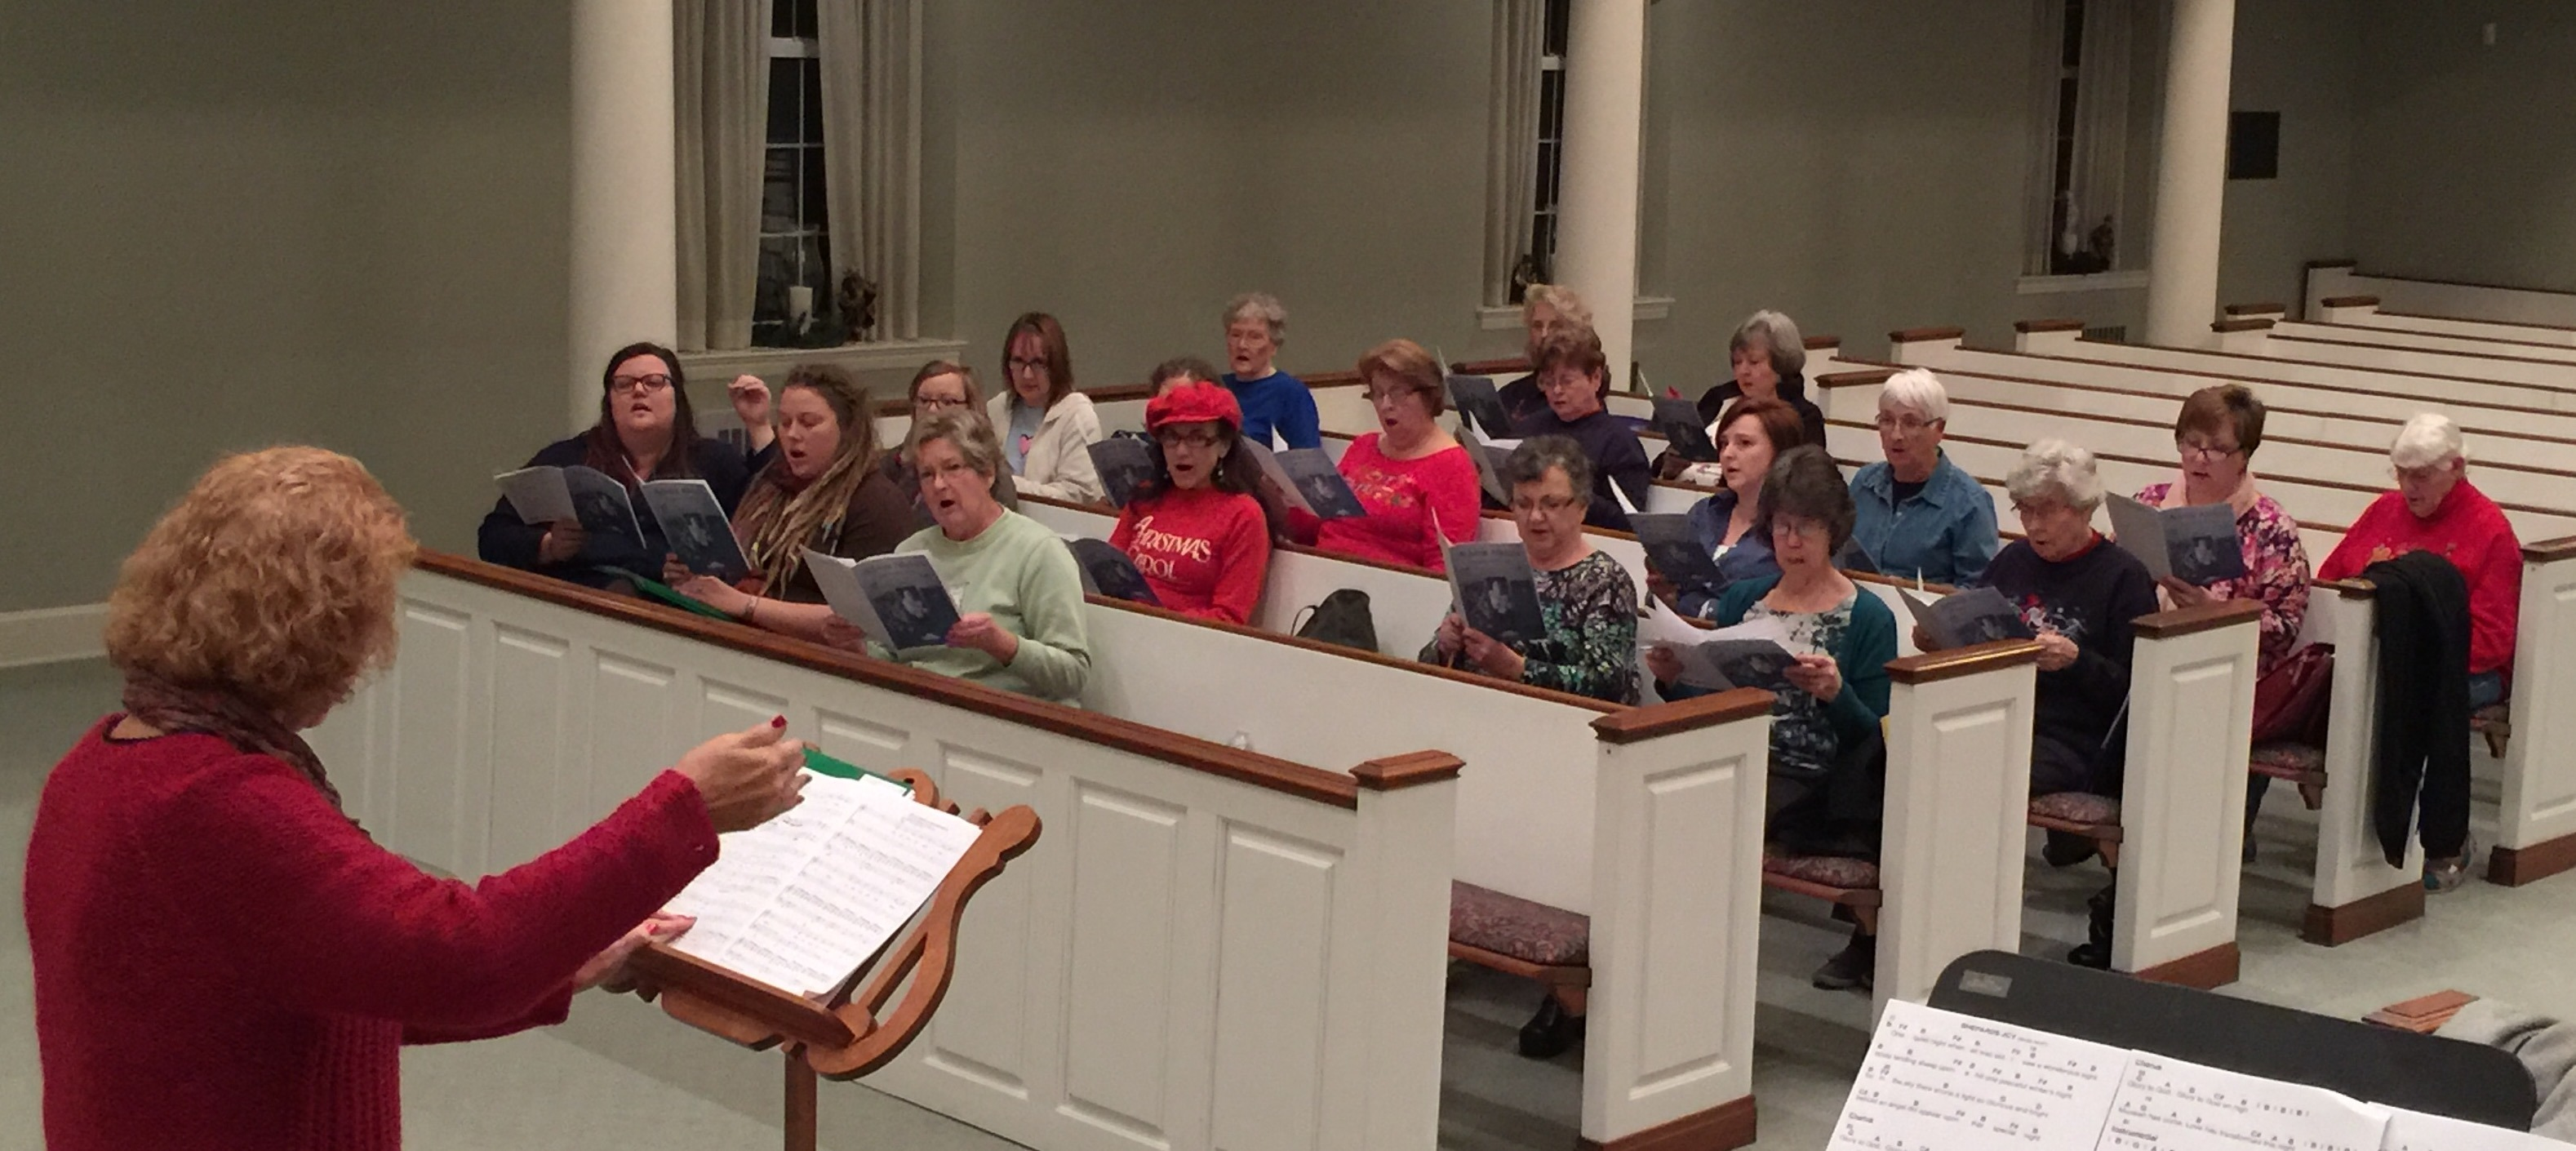 Combined Church Choir rehearsal